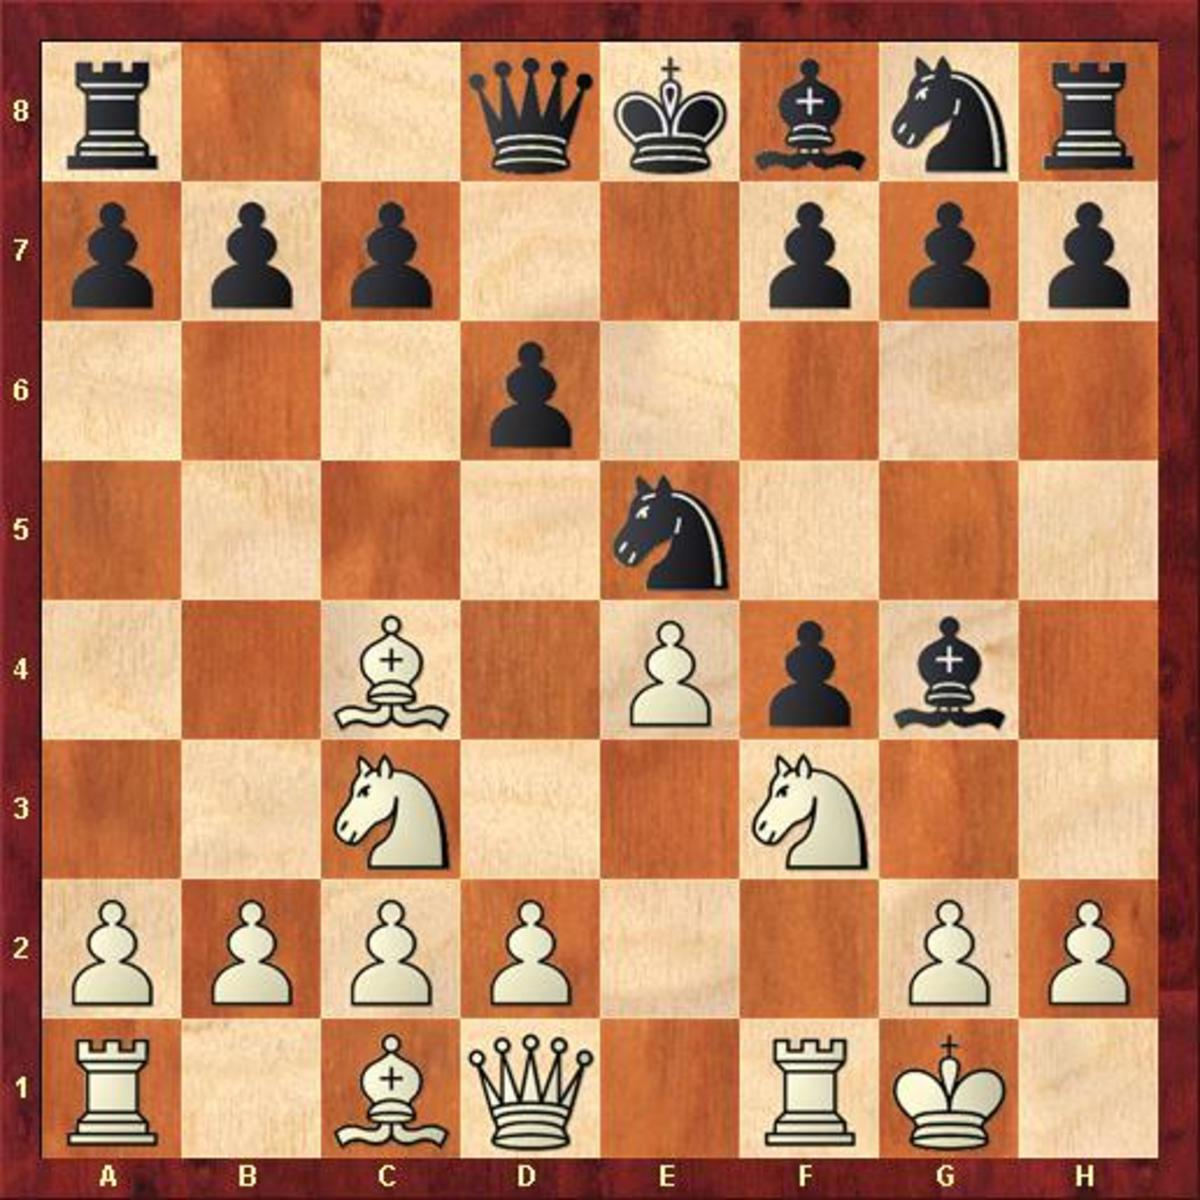 Legal's Mate in the King's Gambit